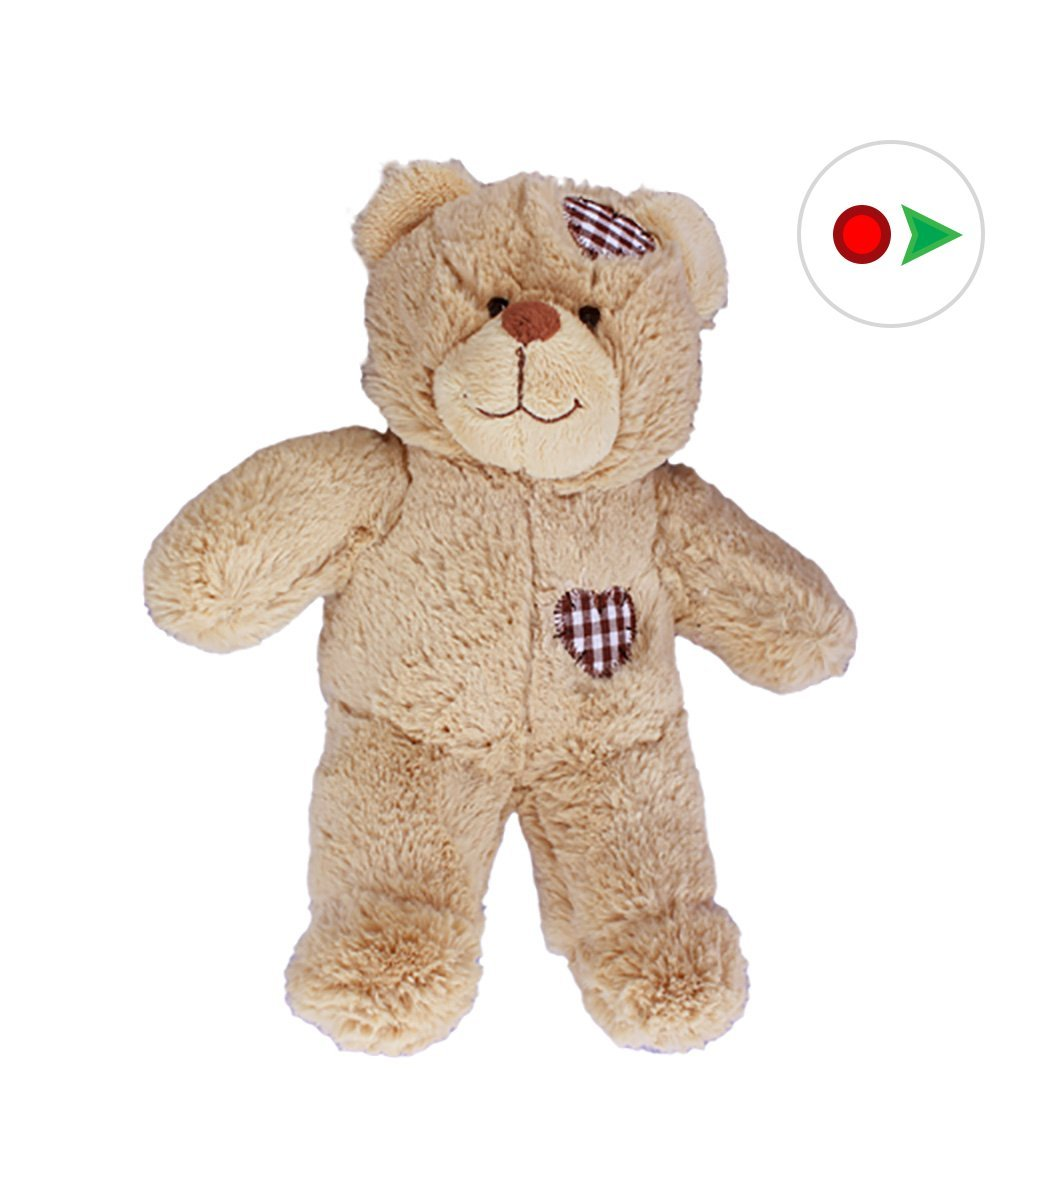 Record Your Own Plush 8 inch Brown Patches Teddy Bear Ready 2 Love in a Few Easy Steps by Teddy Mountain